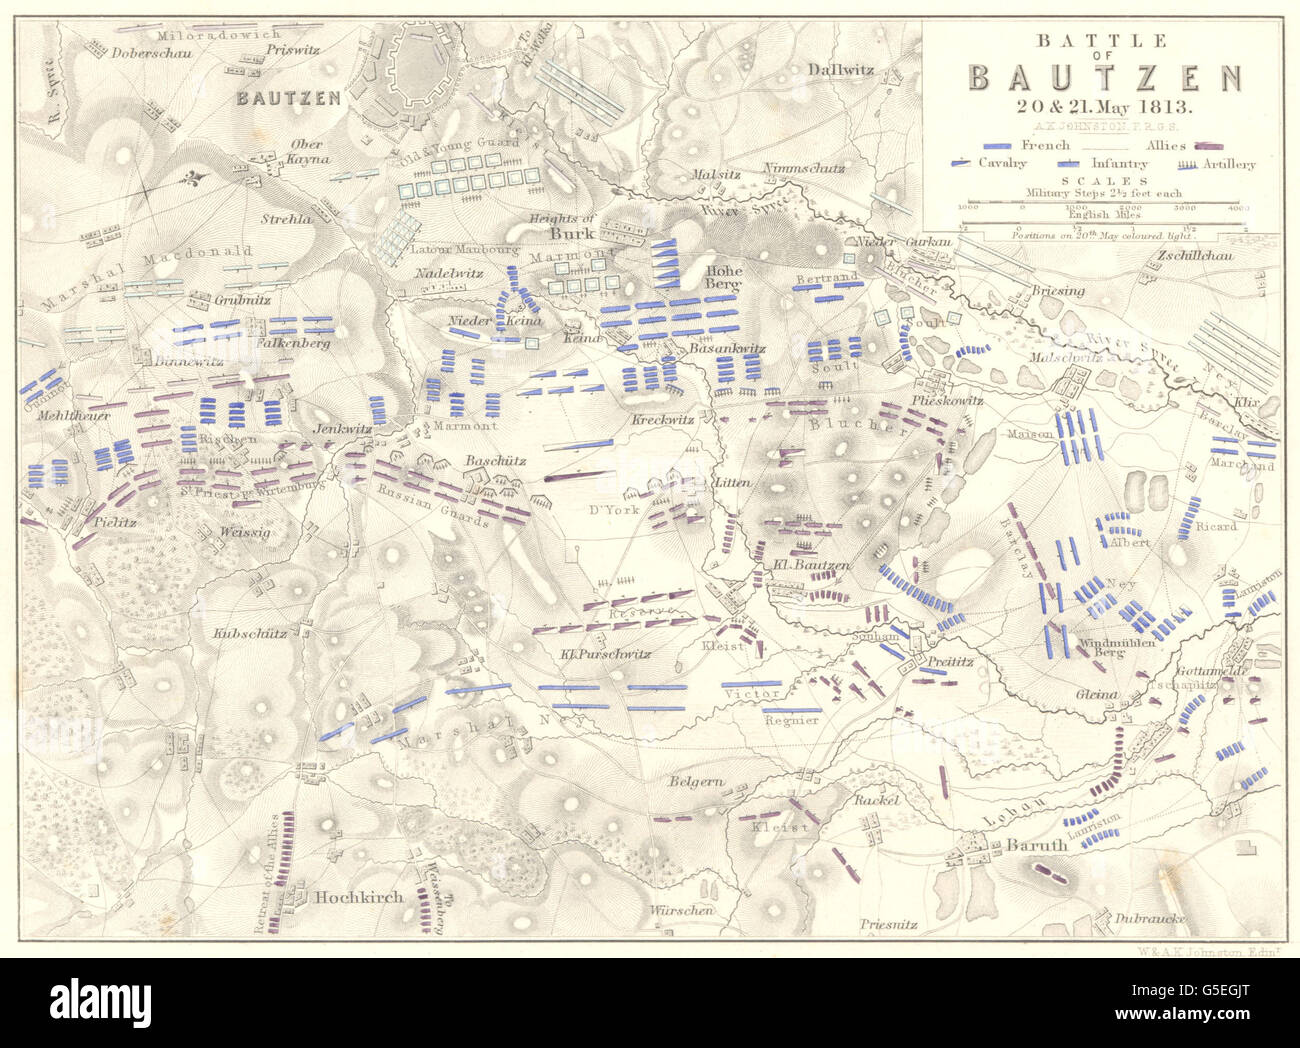 BATTLE OF BAUTZEN: 20th and 21st May 1813. Germany. Napoleonic Wars, 1848 map - Stock Image